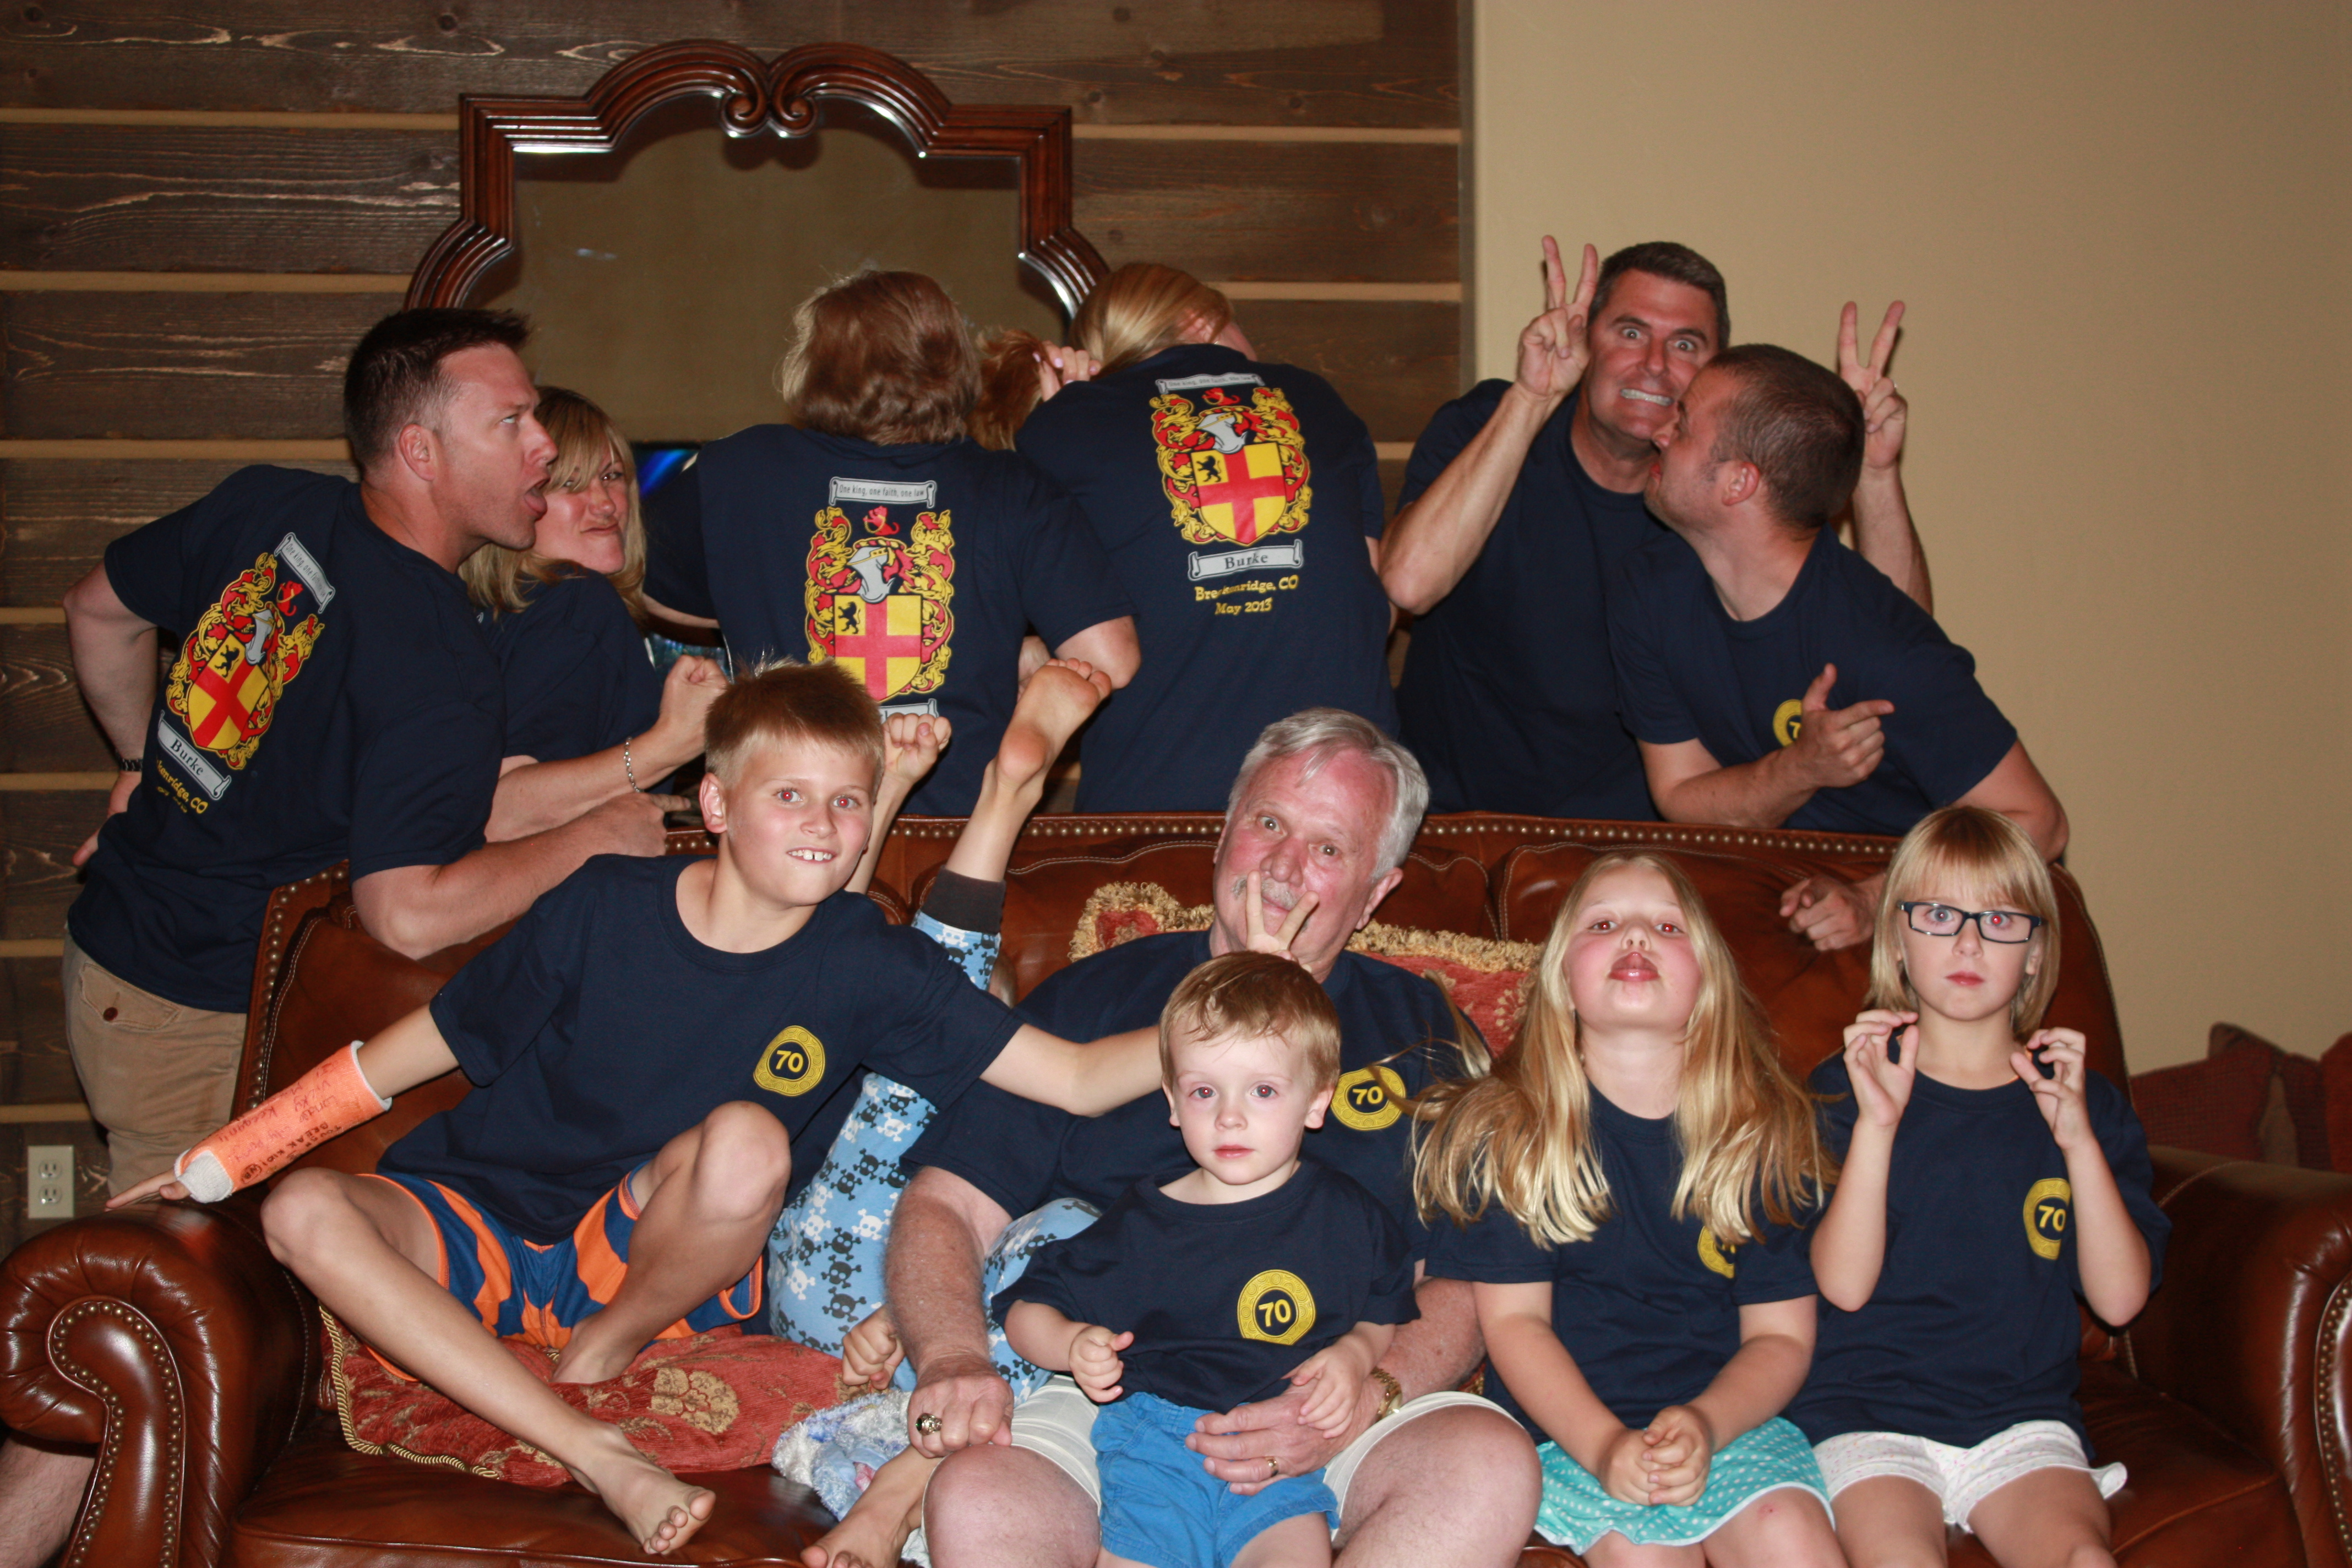 Custom T Shirts For Dads 70th Birthday Celebration